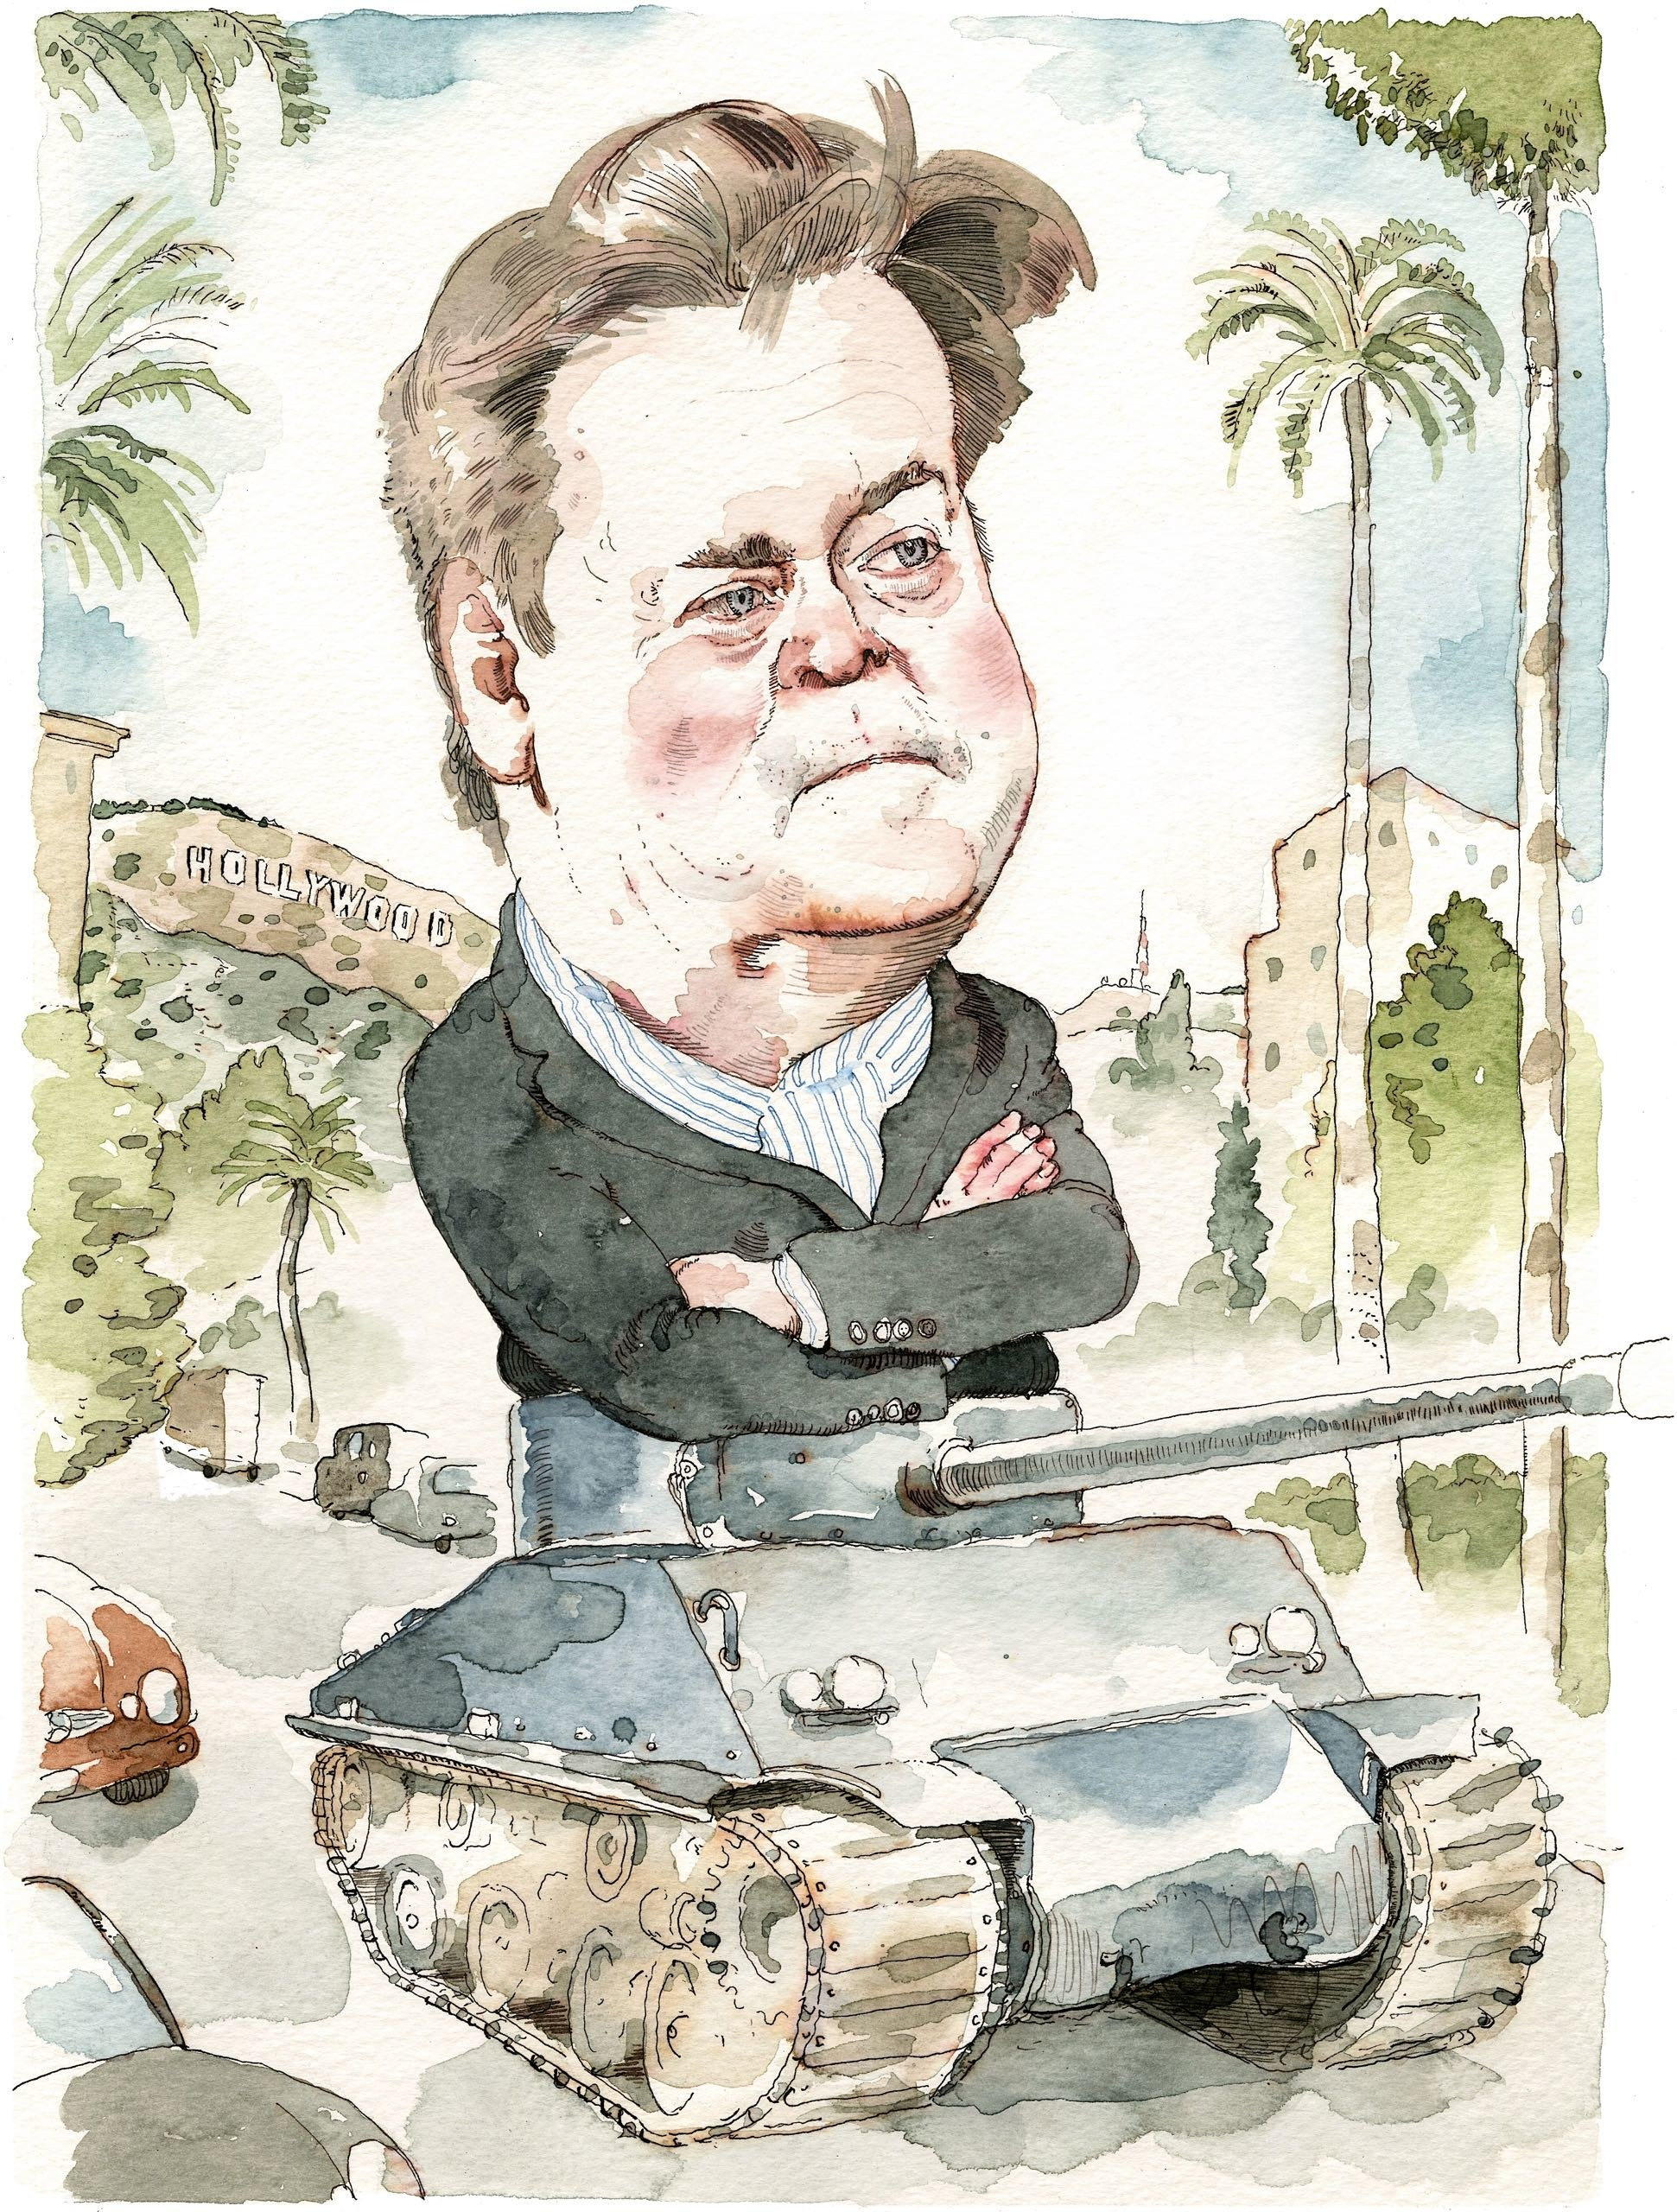 New Yorker caricature of Steve Bannon